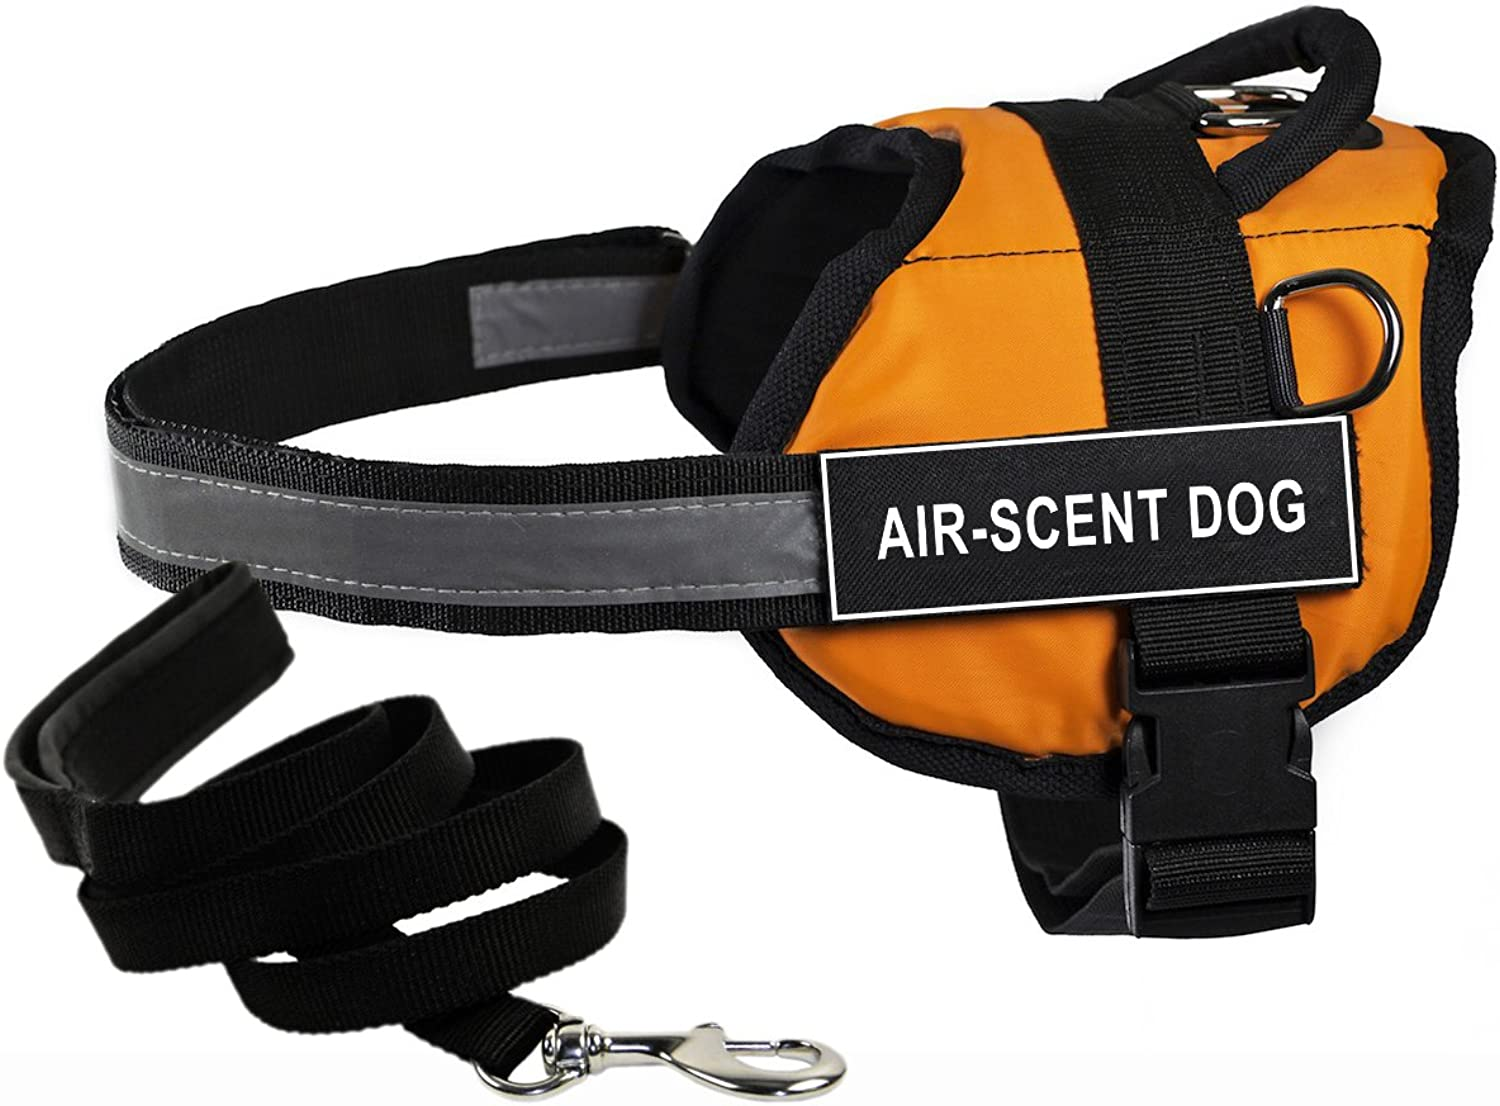 Dean & Tyler's DT Works orange AIRSCENT DOG Harness with Chest Padding, Small, and Black 6 ft Padded Puppy Leash.